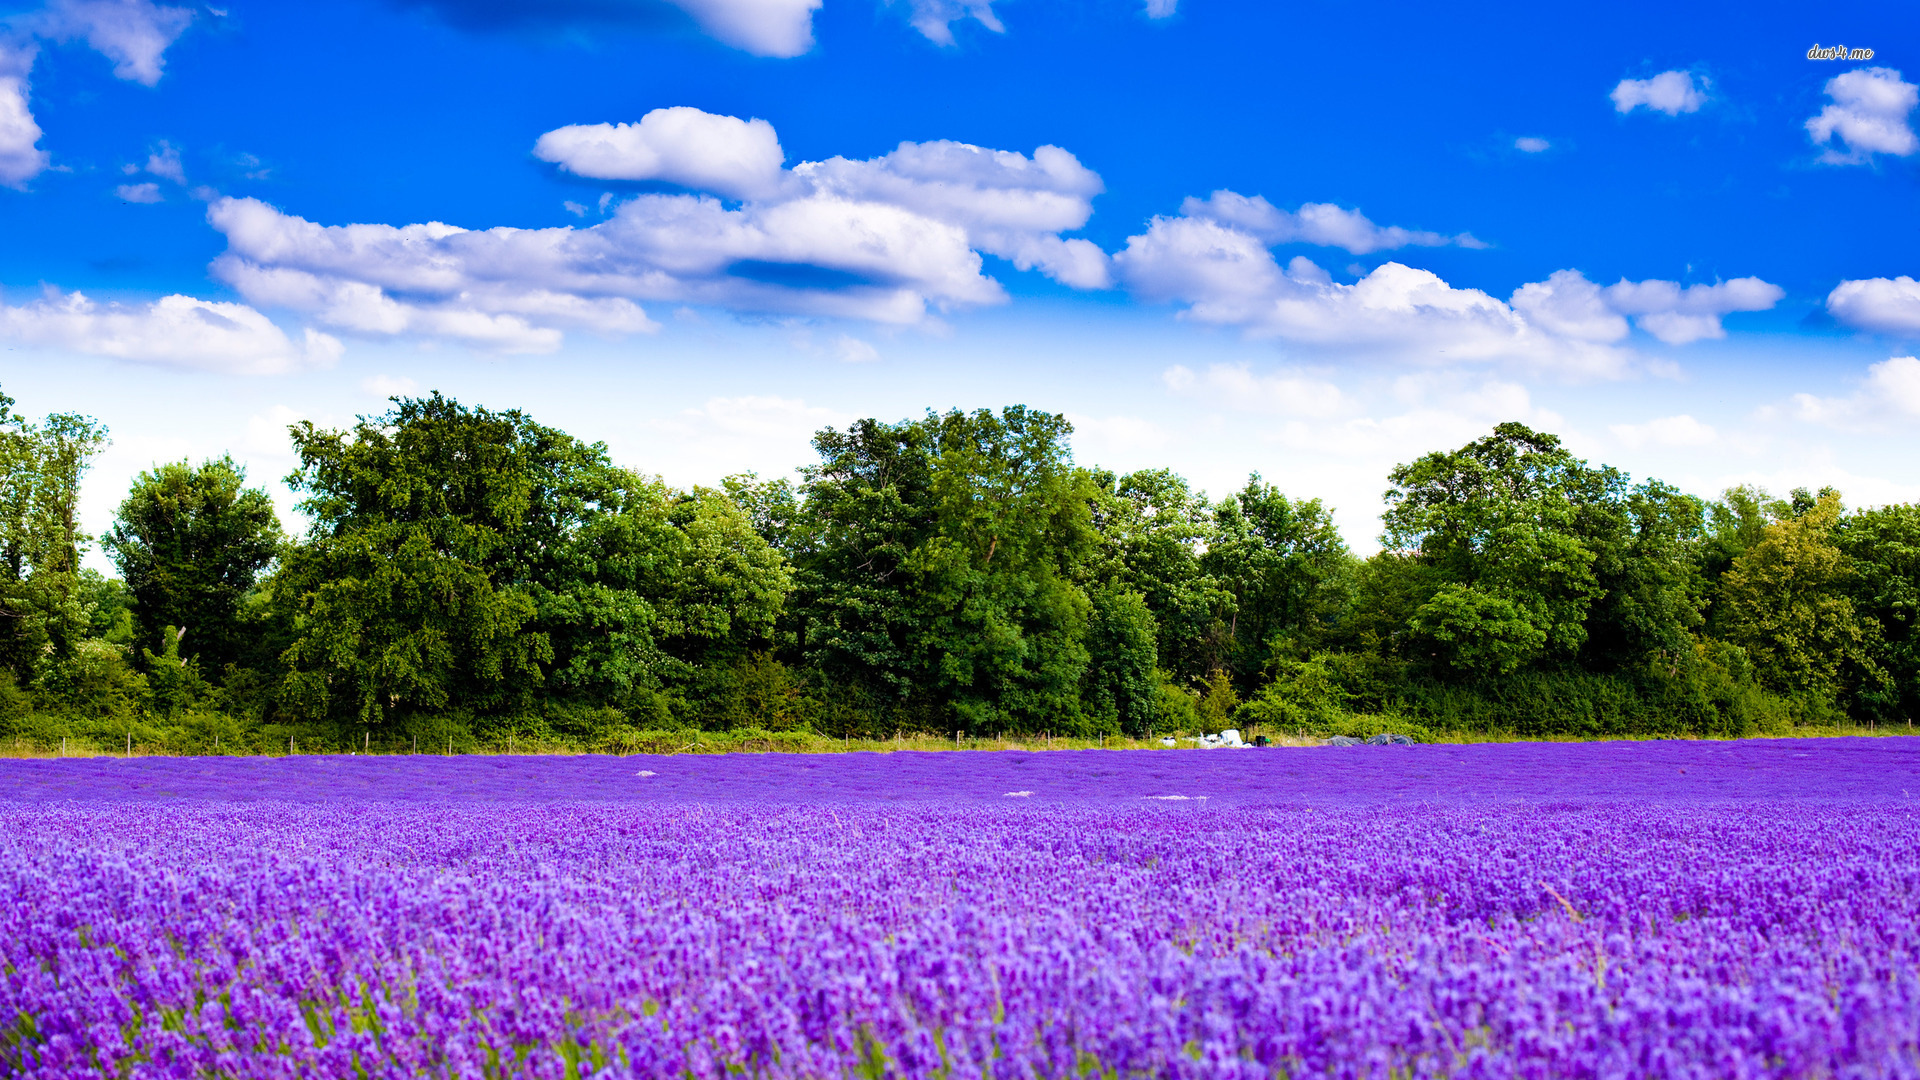 Beautiful Lavender Flowers Wallpaper | Free High Definition Wallpapers Wallpaper